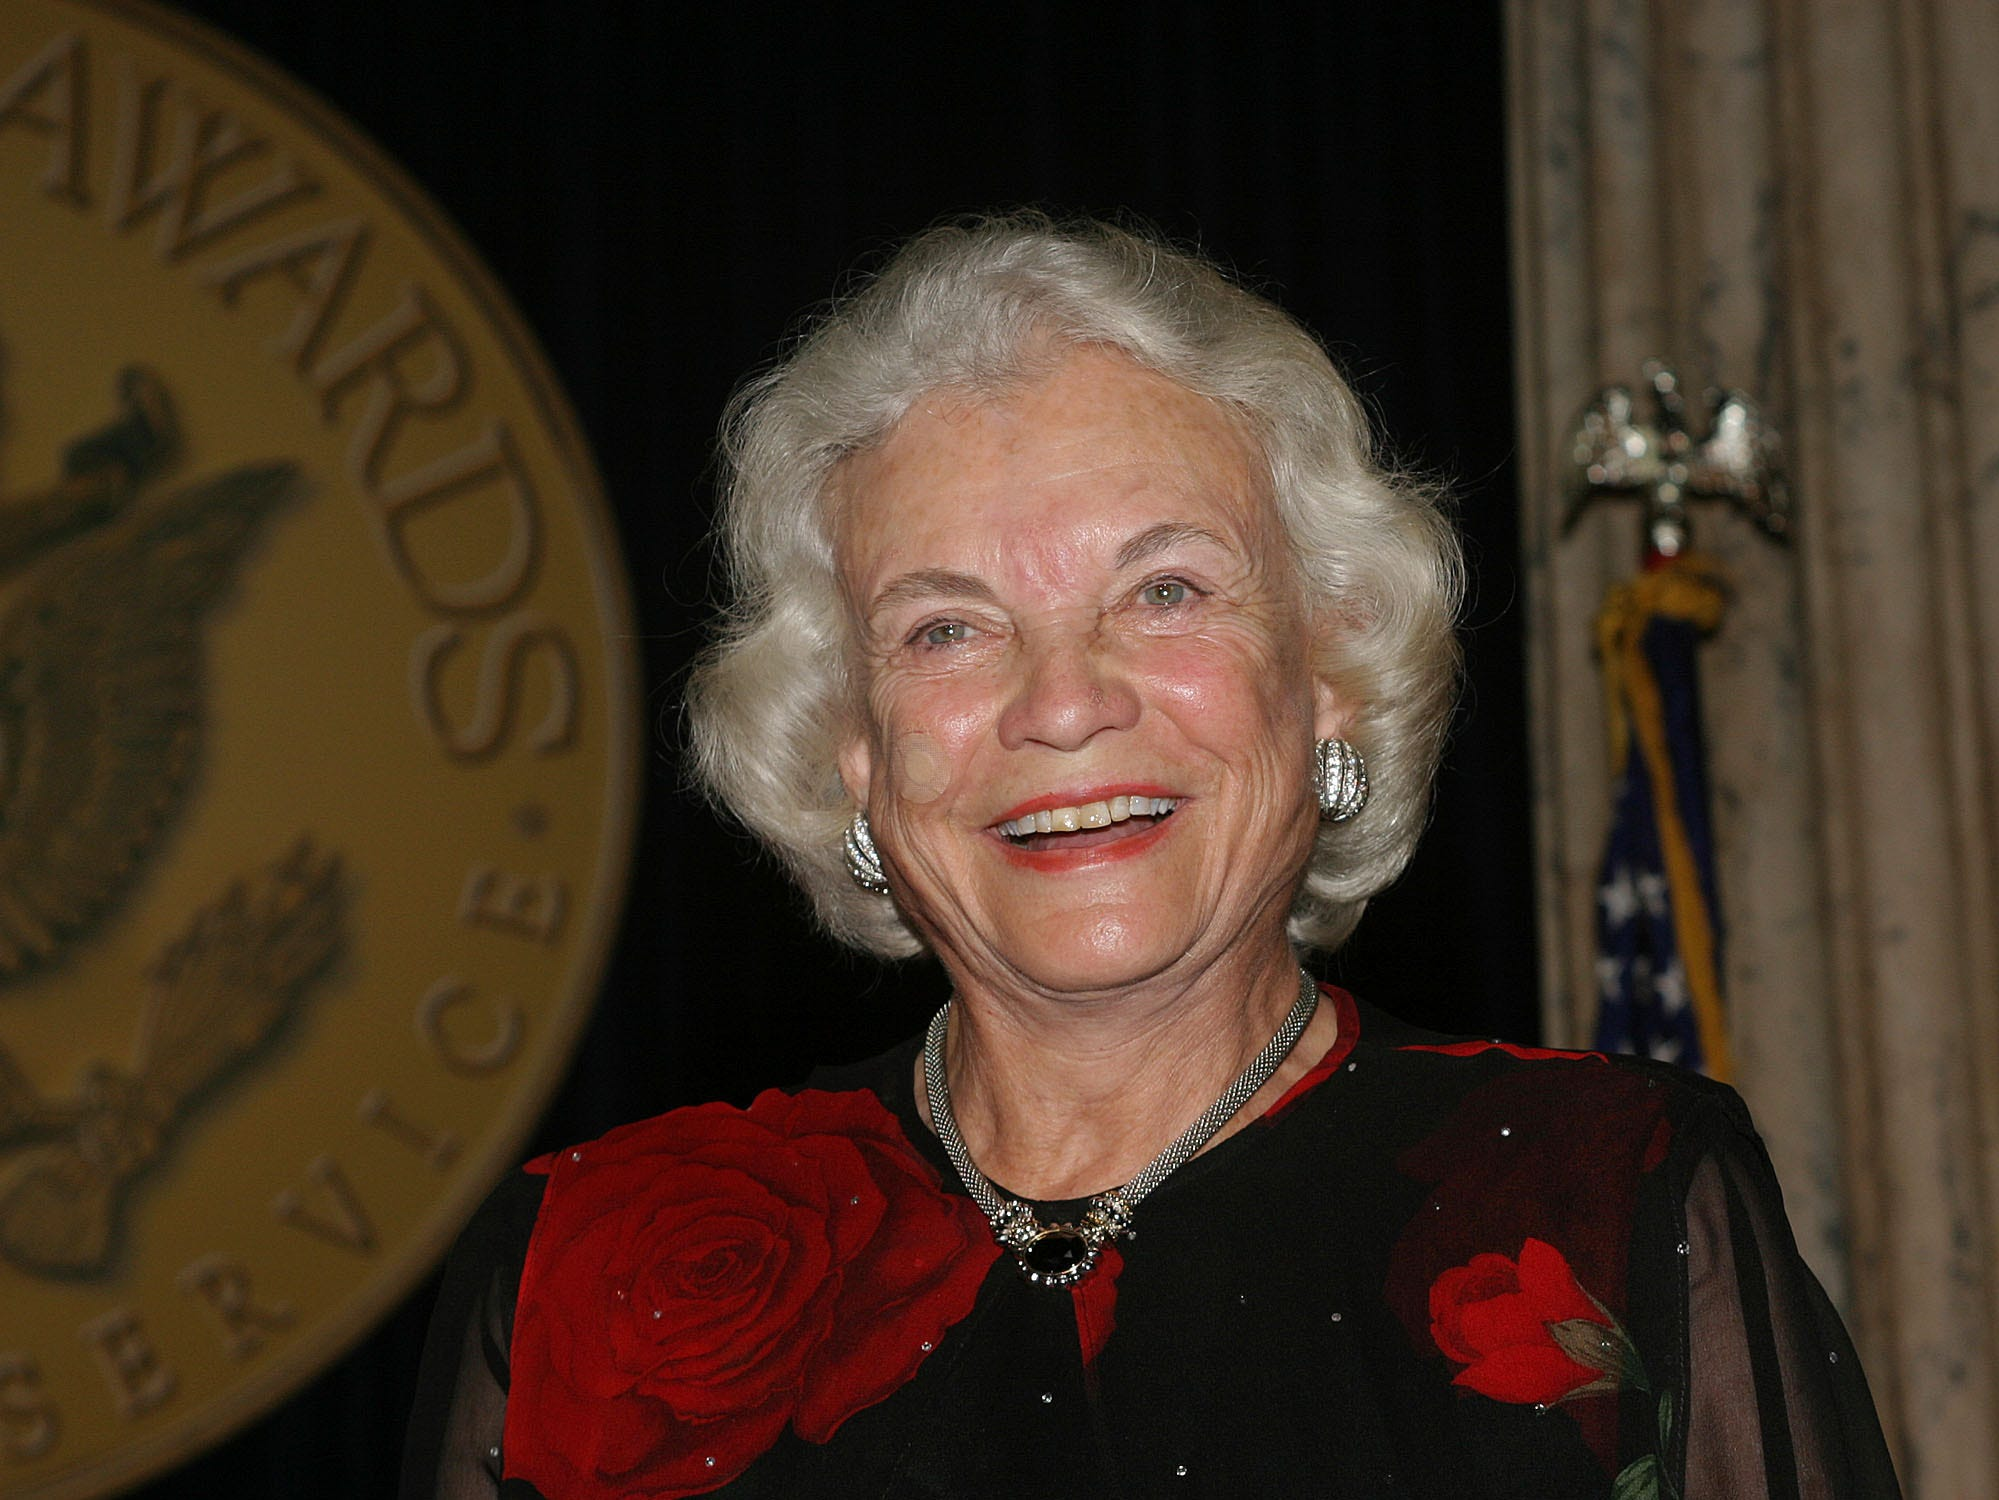 Supreme Court Justice Sandra Day O'Connor smiles as the crowd applauds after she received the Senator John Heinz Award for Greatest Public Service by an Elected or Appointed Official during a ceremony at the American Institute for Public Service Jefferson Awards on June 22, 2004, in Washington.